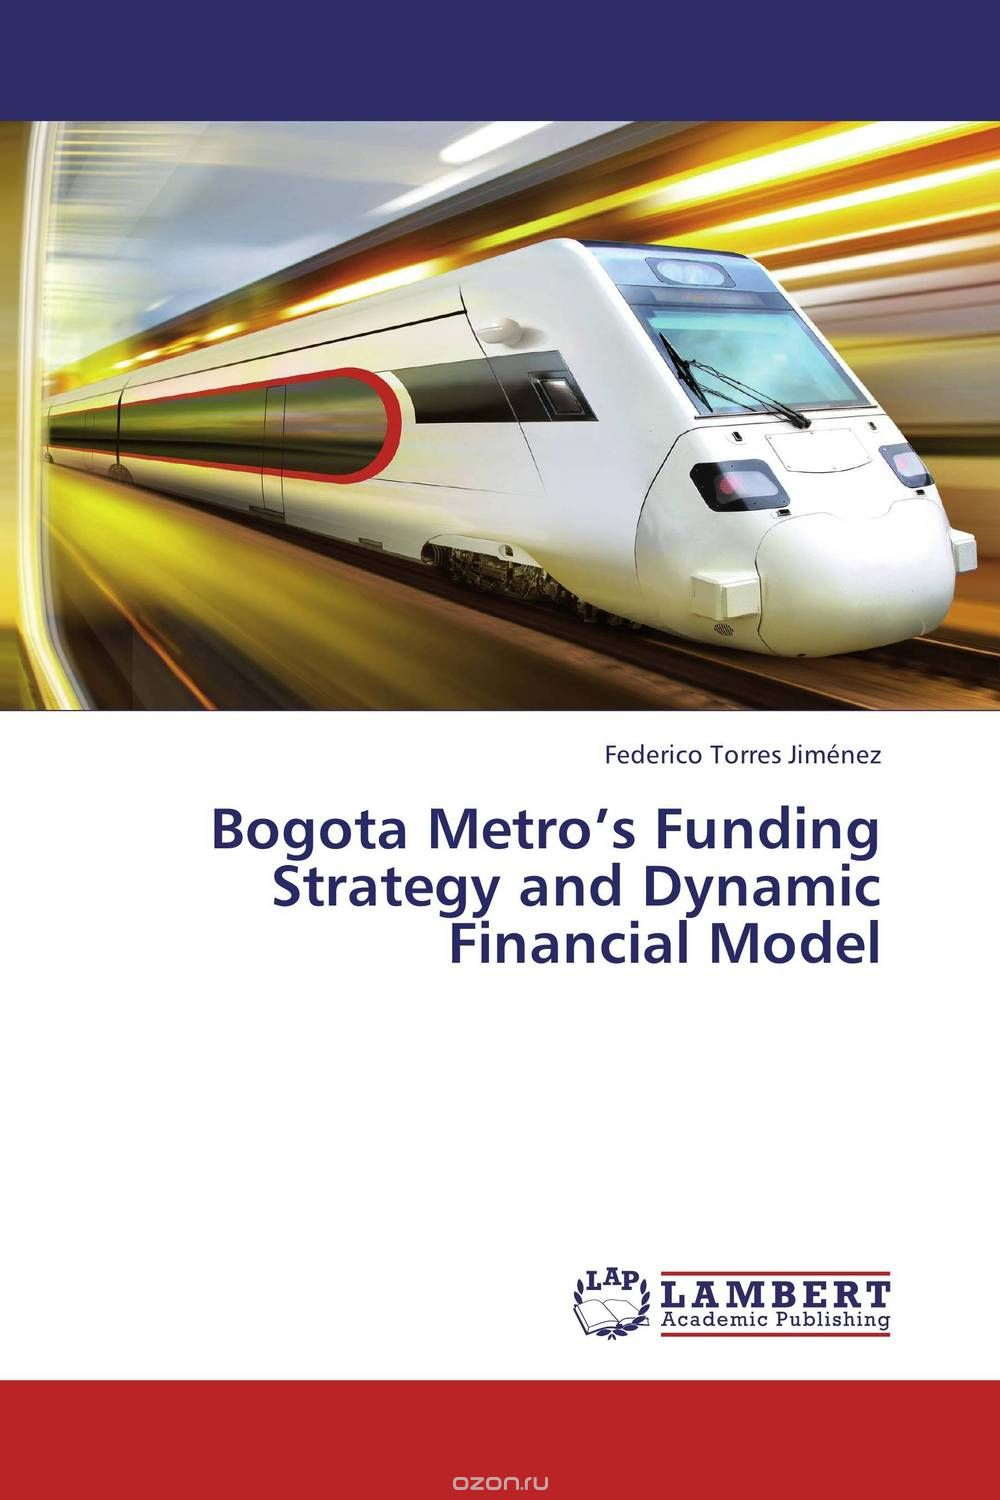 Bogota Metro's Funding Strategy and Dynamic Financial Model